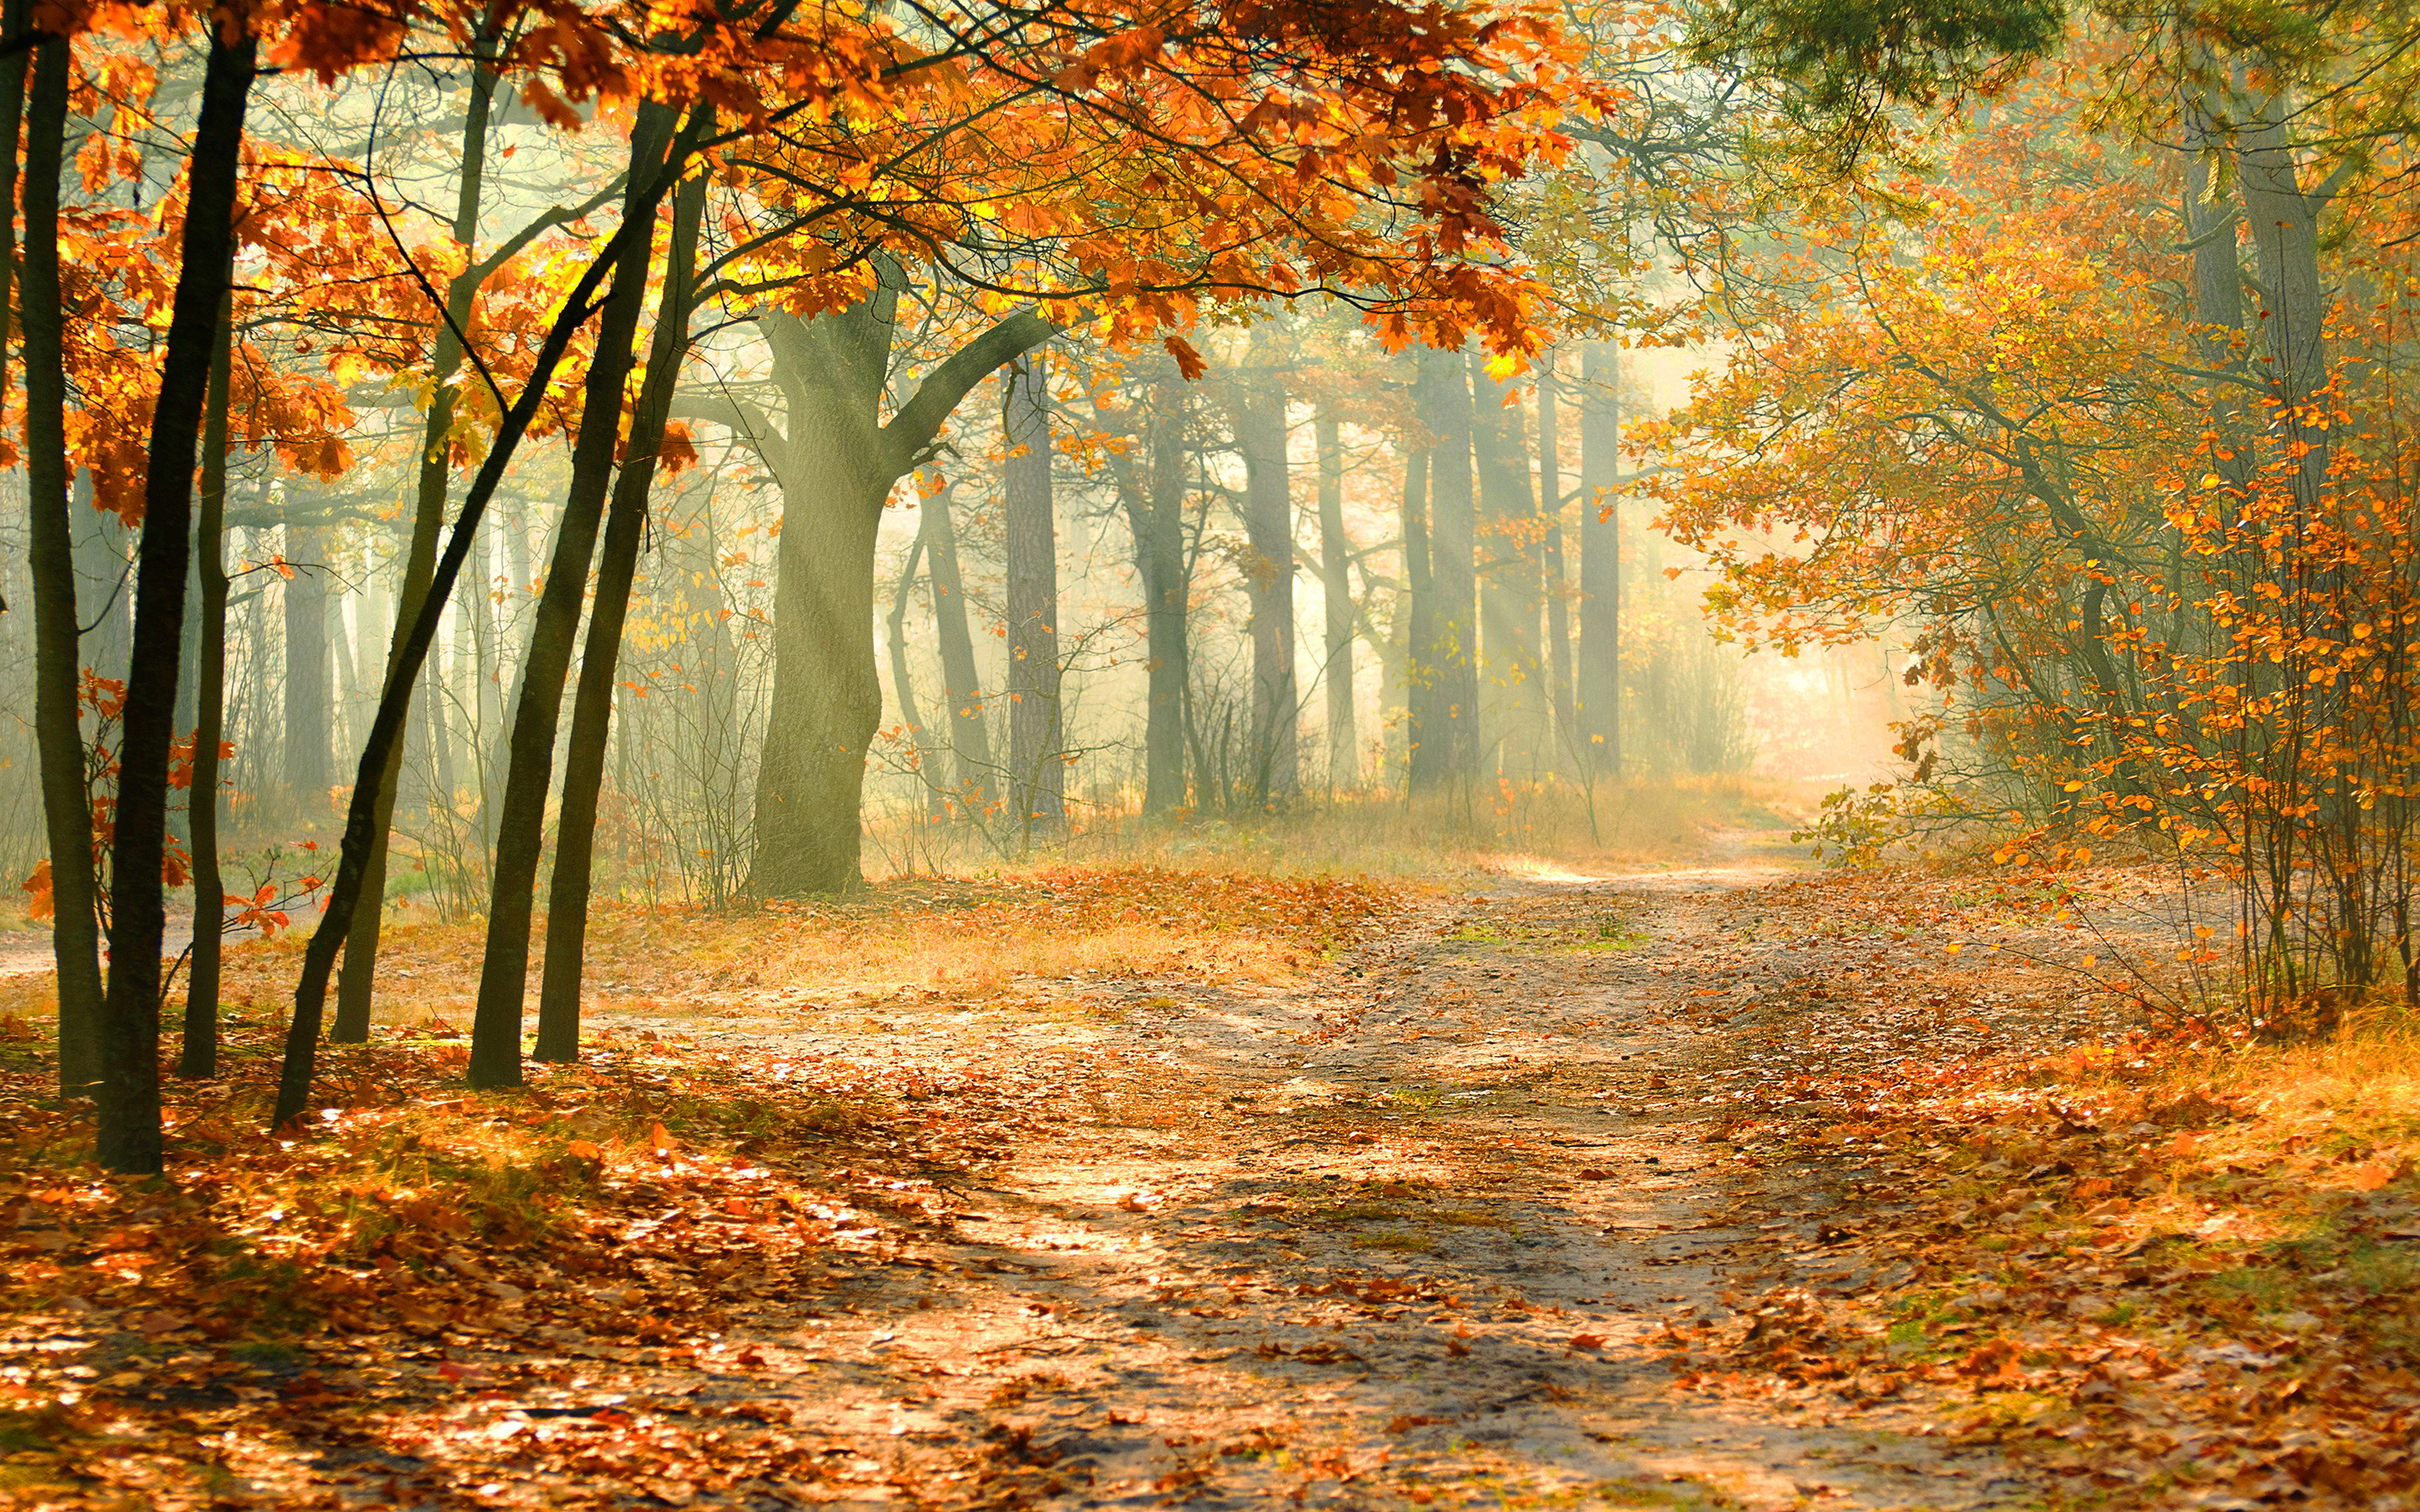 Nature autumn forest